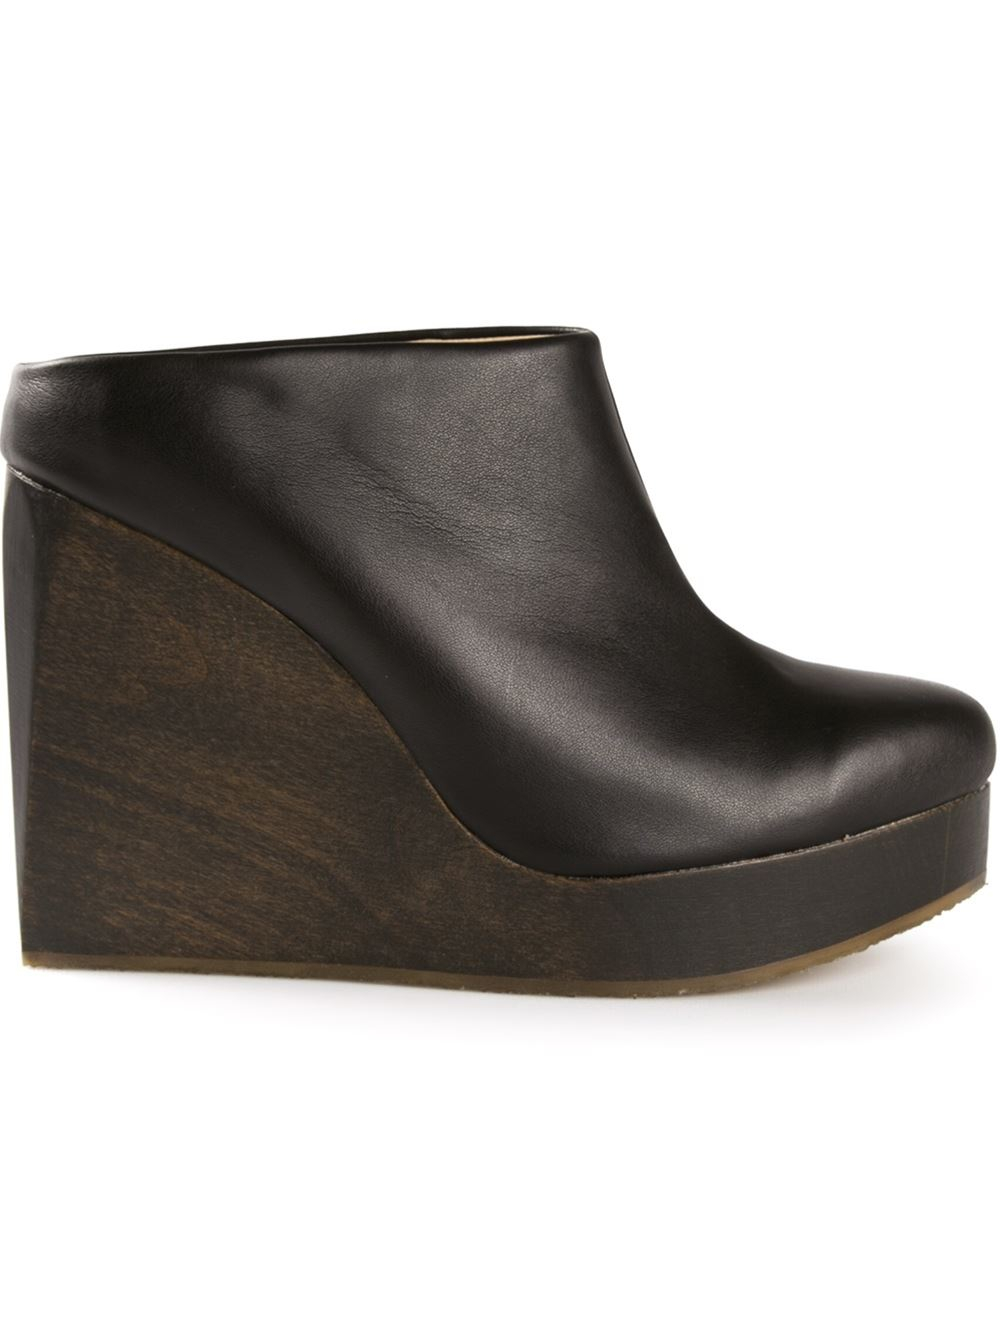 Sydney Brown Wedge Clogs In Black Lyst